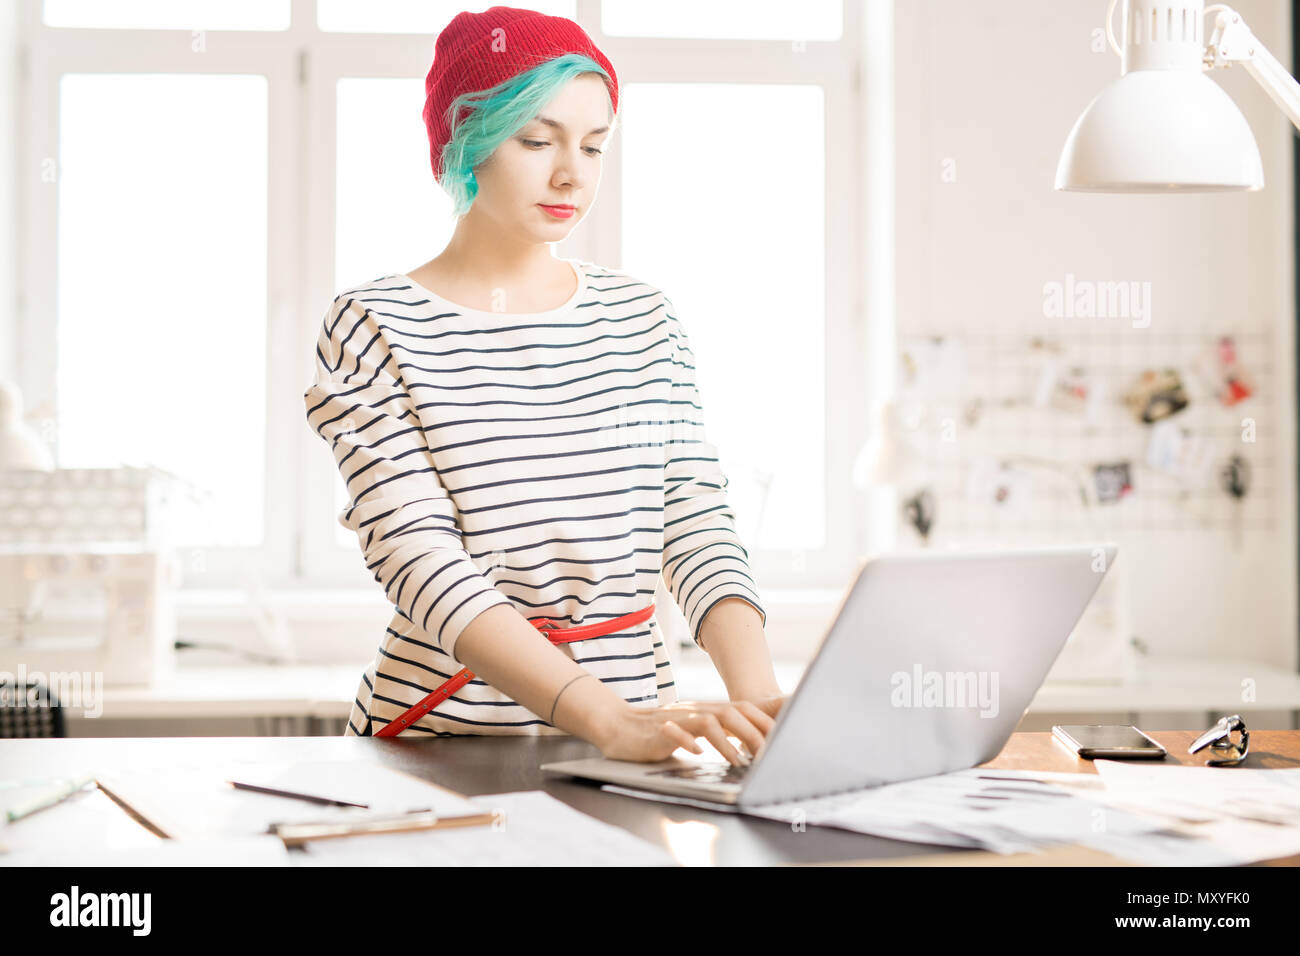 Waist up portrait of contemporary young woman  with green hair using laptop while working on creative fashion design  project in small atelier studio - Stock Image